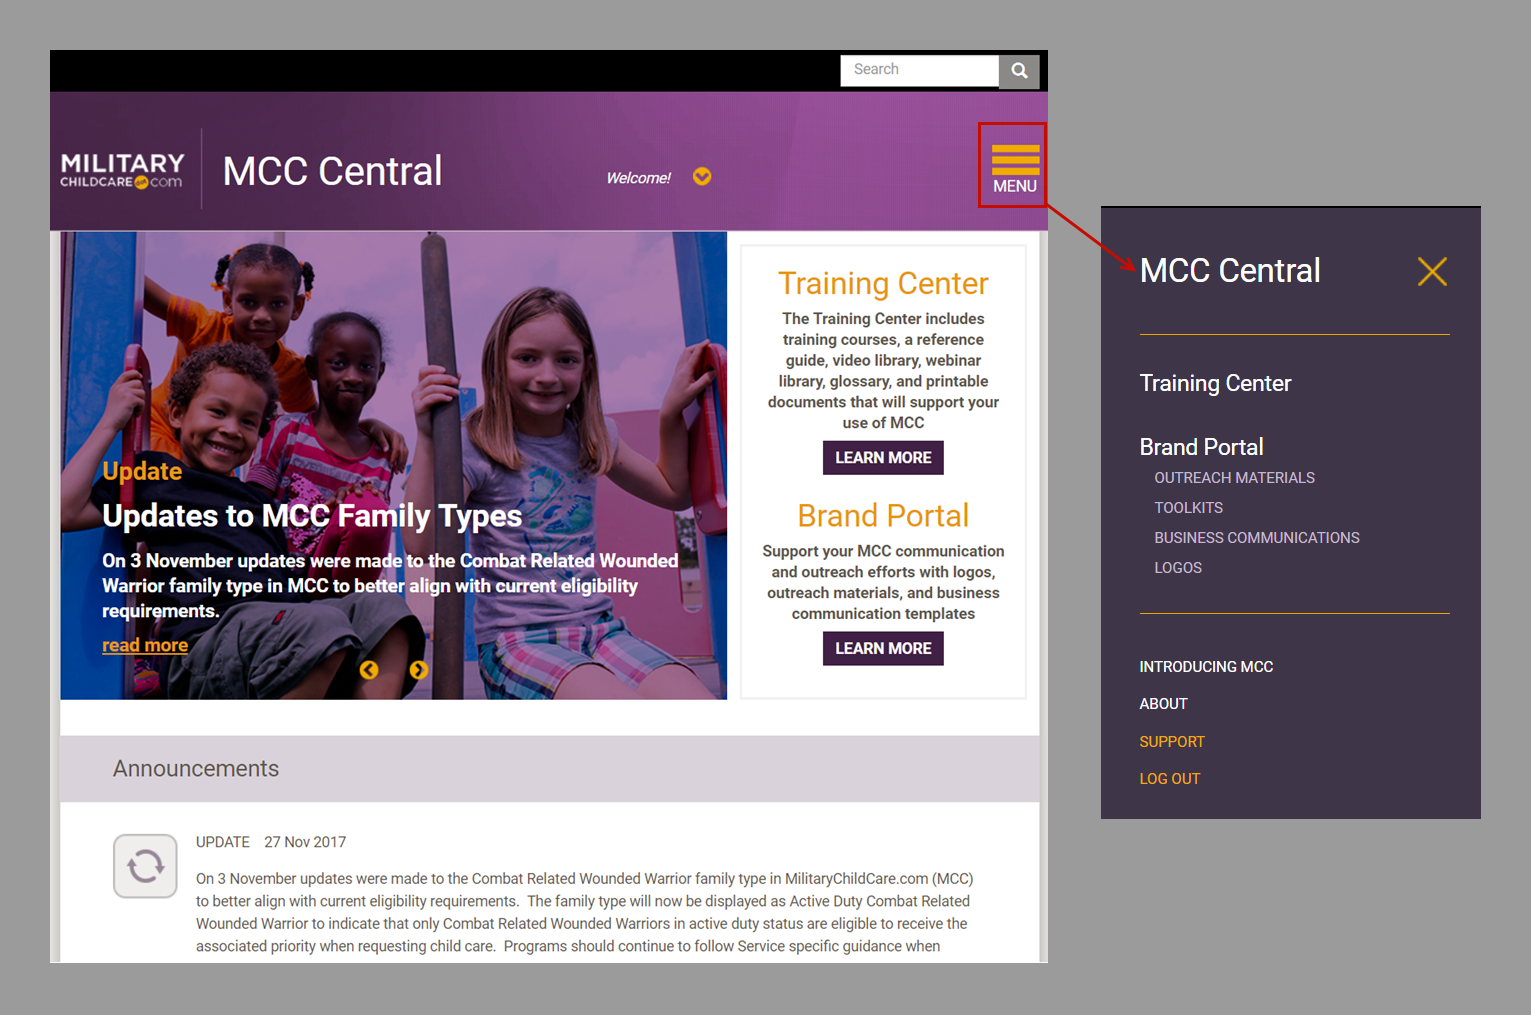 MCC Central home page with the main menu expanded